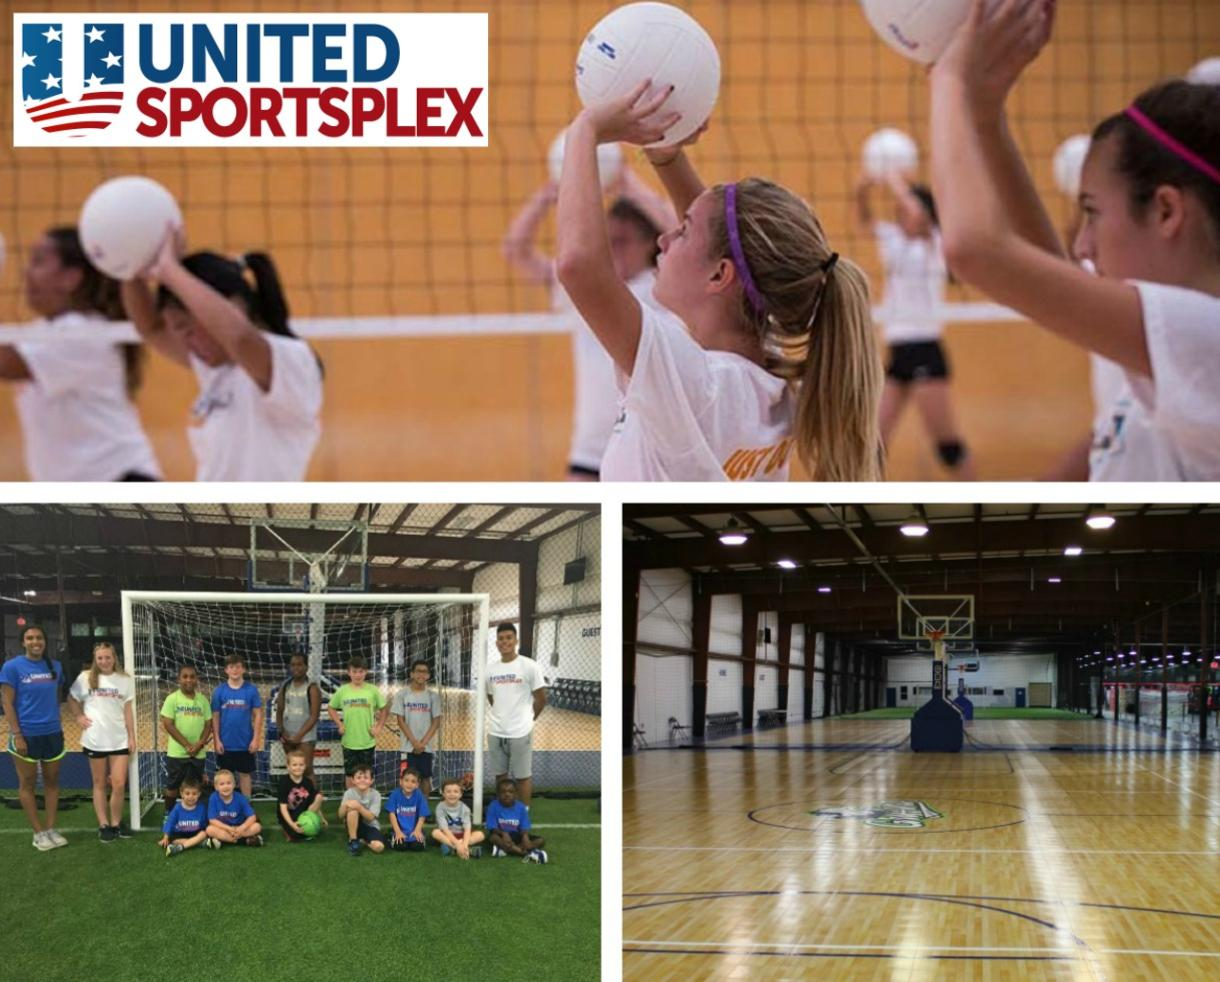 $140 for United Sportsplex Camps for Ages 5-18 in Manassas (Up to $55 Off)